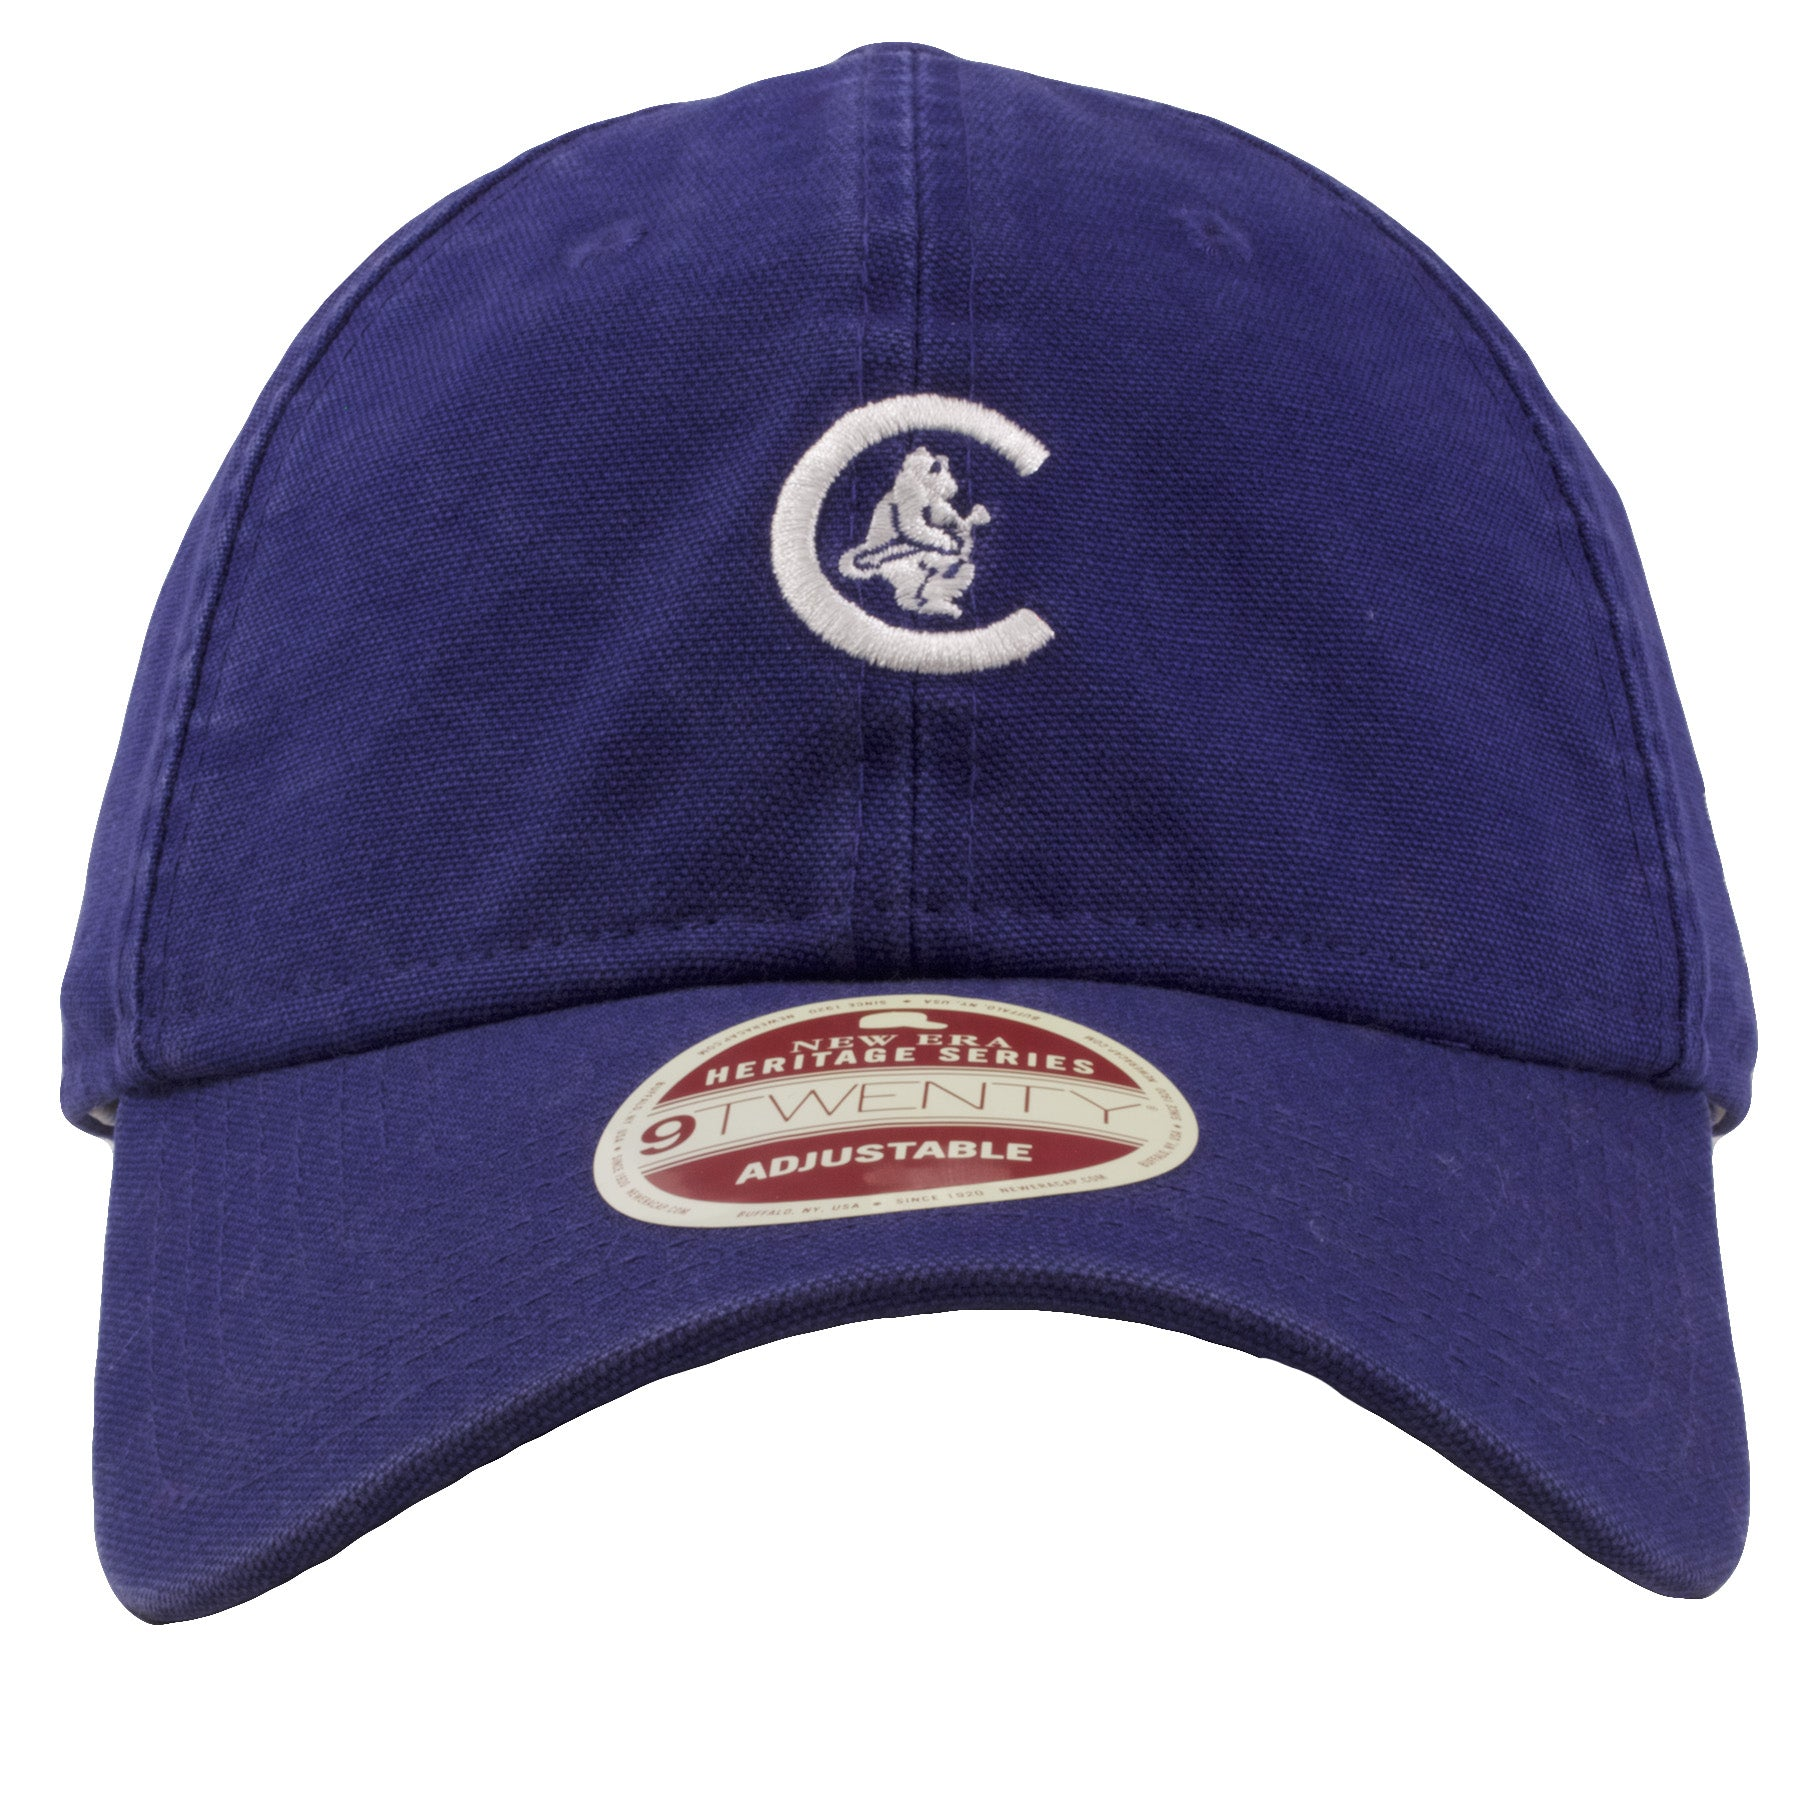 46d1c27d771 embroidered on the front of the chicago cubs vintage dad hat is the retro  cubs logo